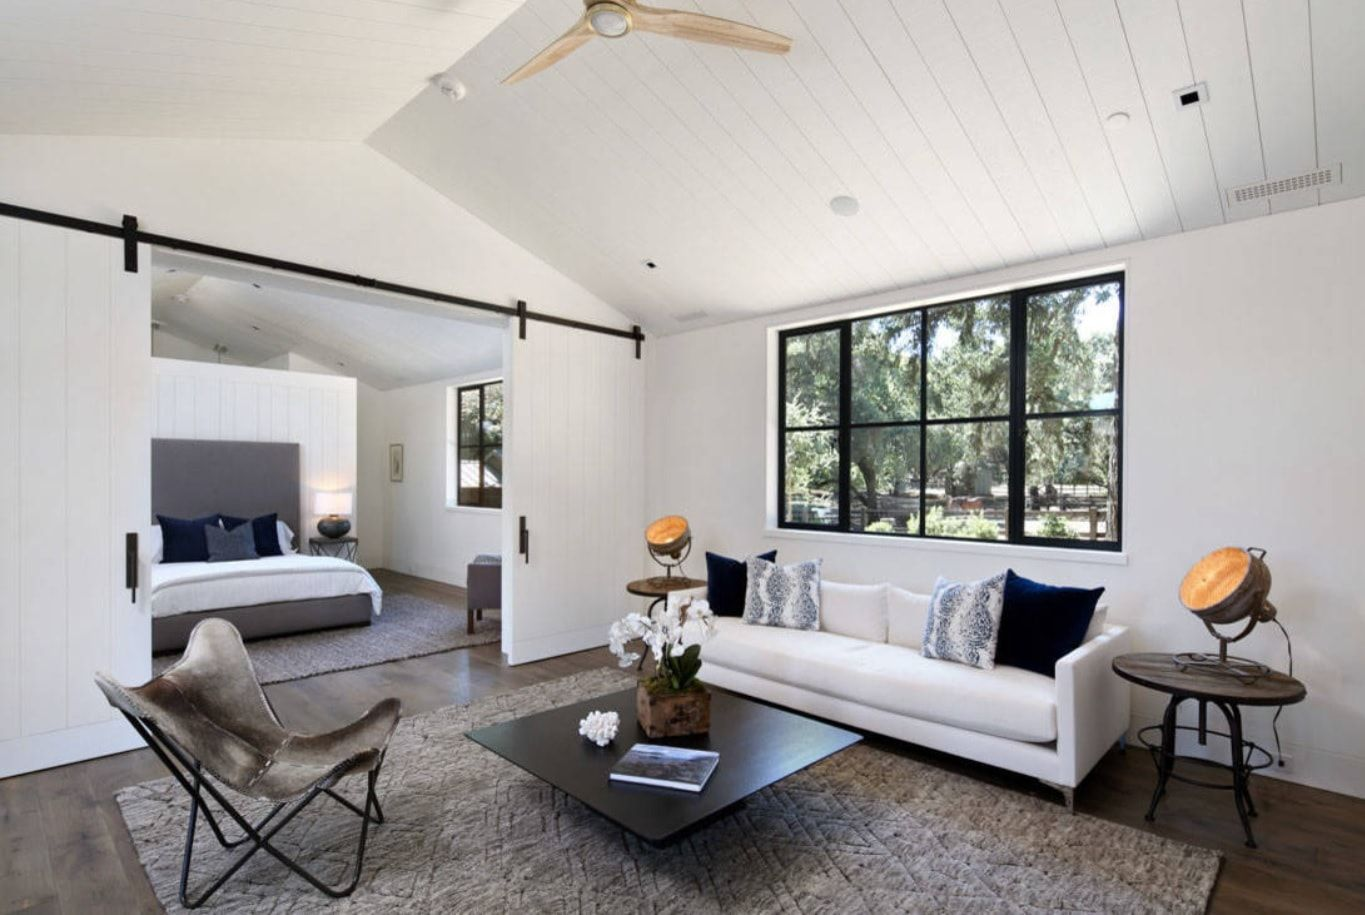 White interior with black accents